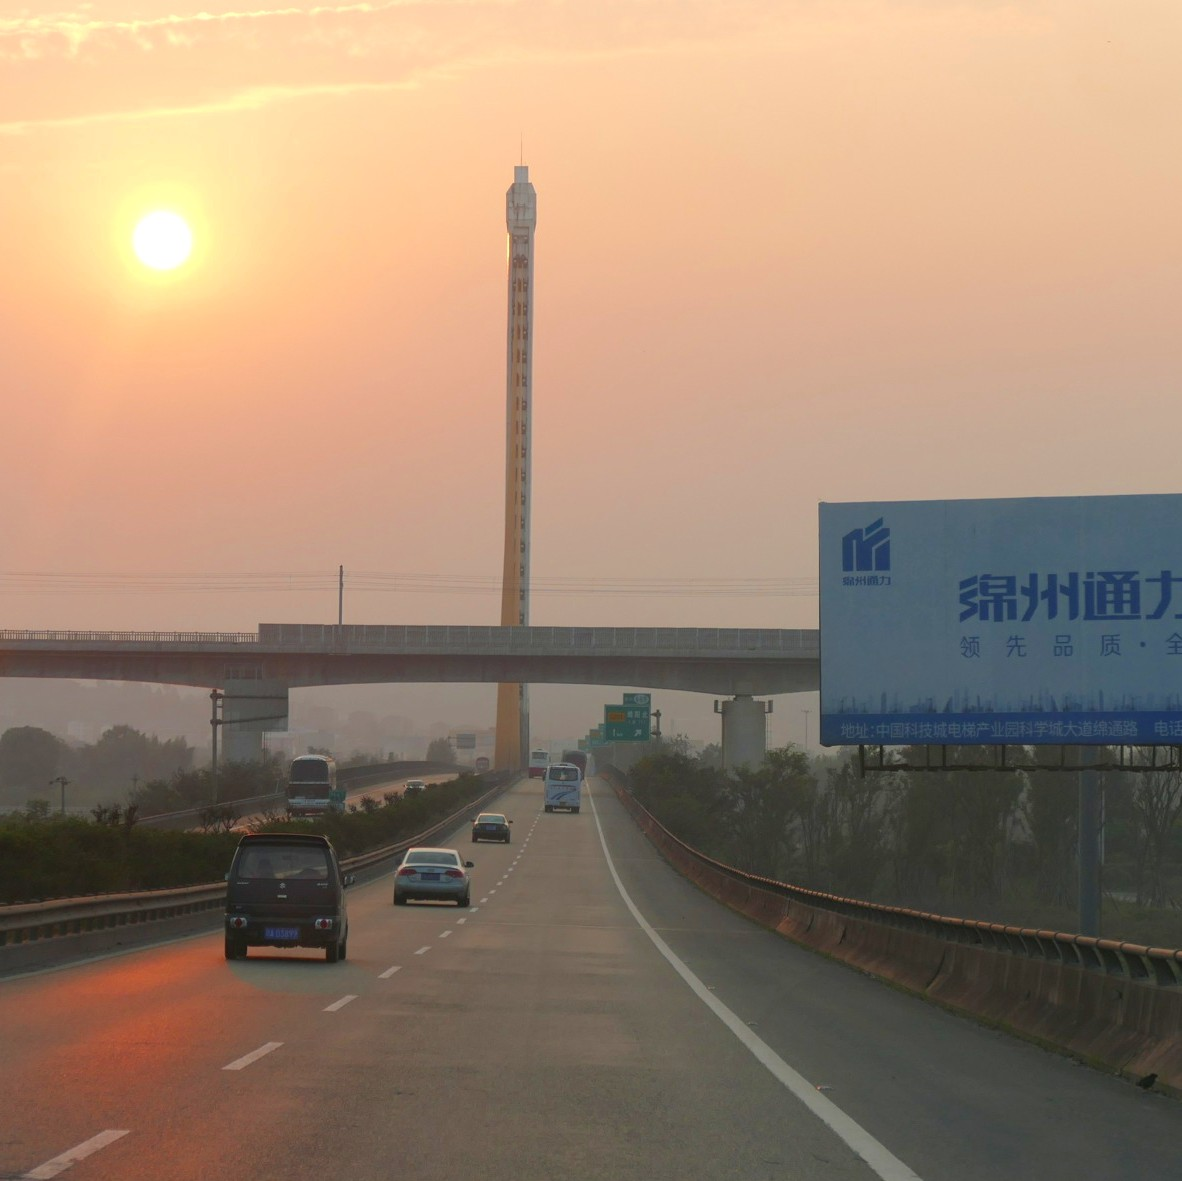 The spire of a large, recently built bridge looms against the sunset. Noah Strycker